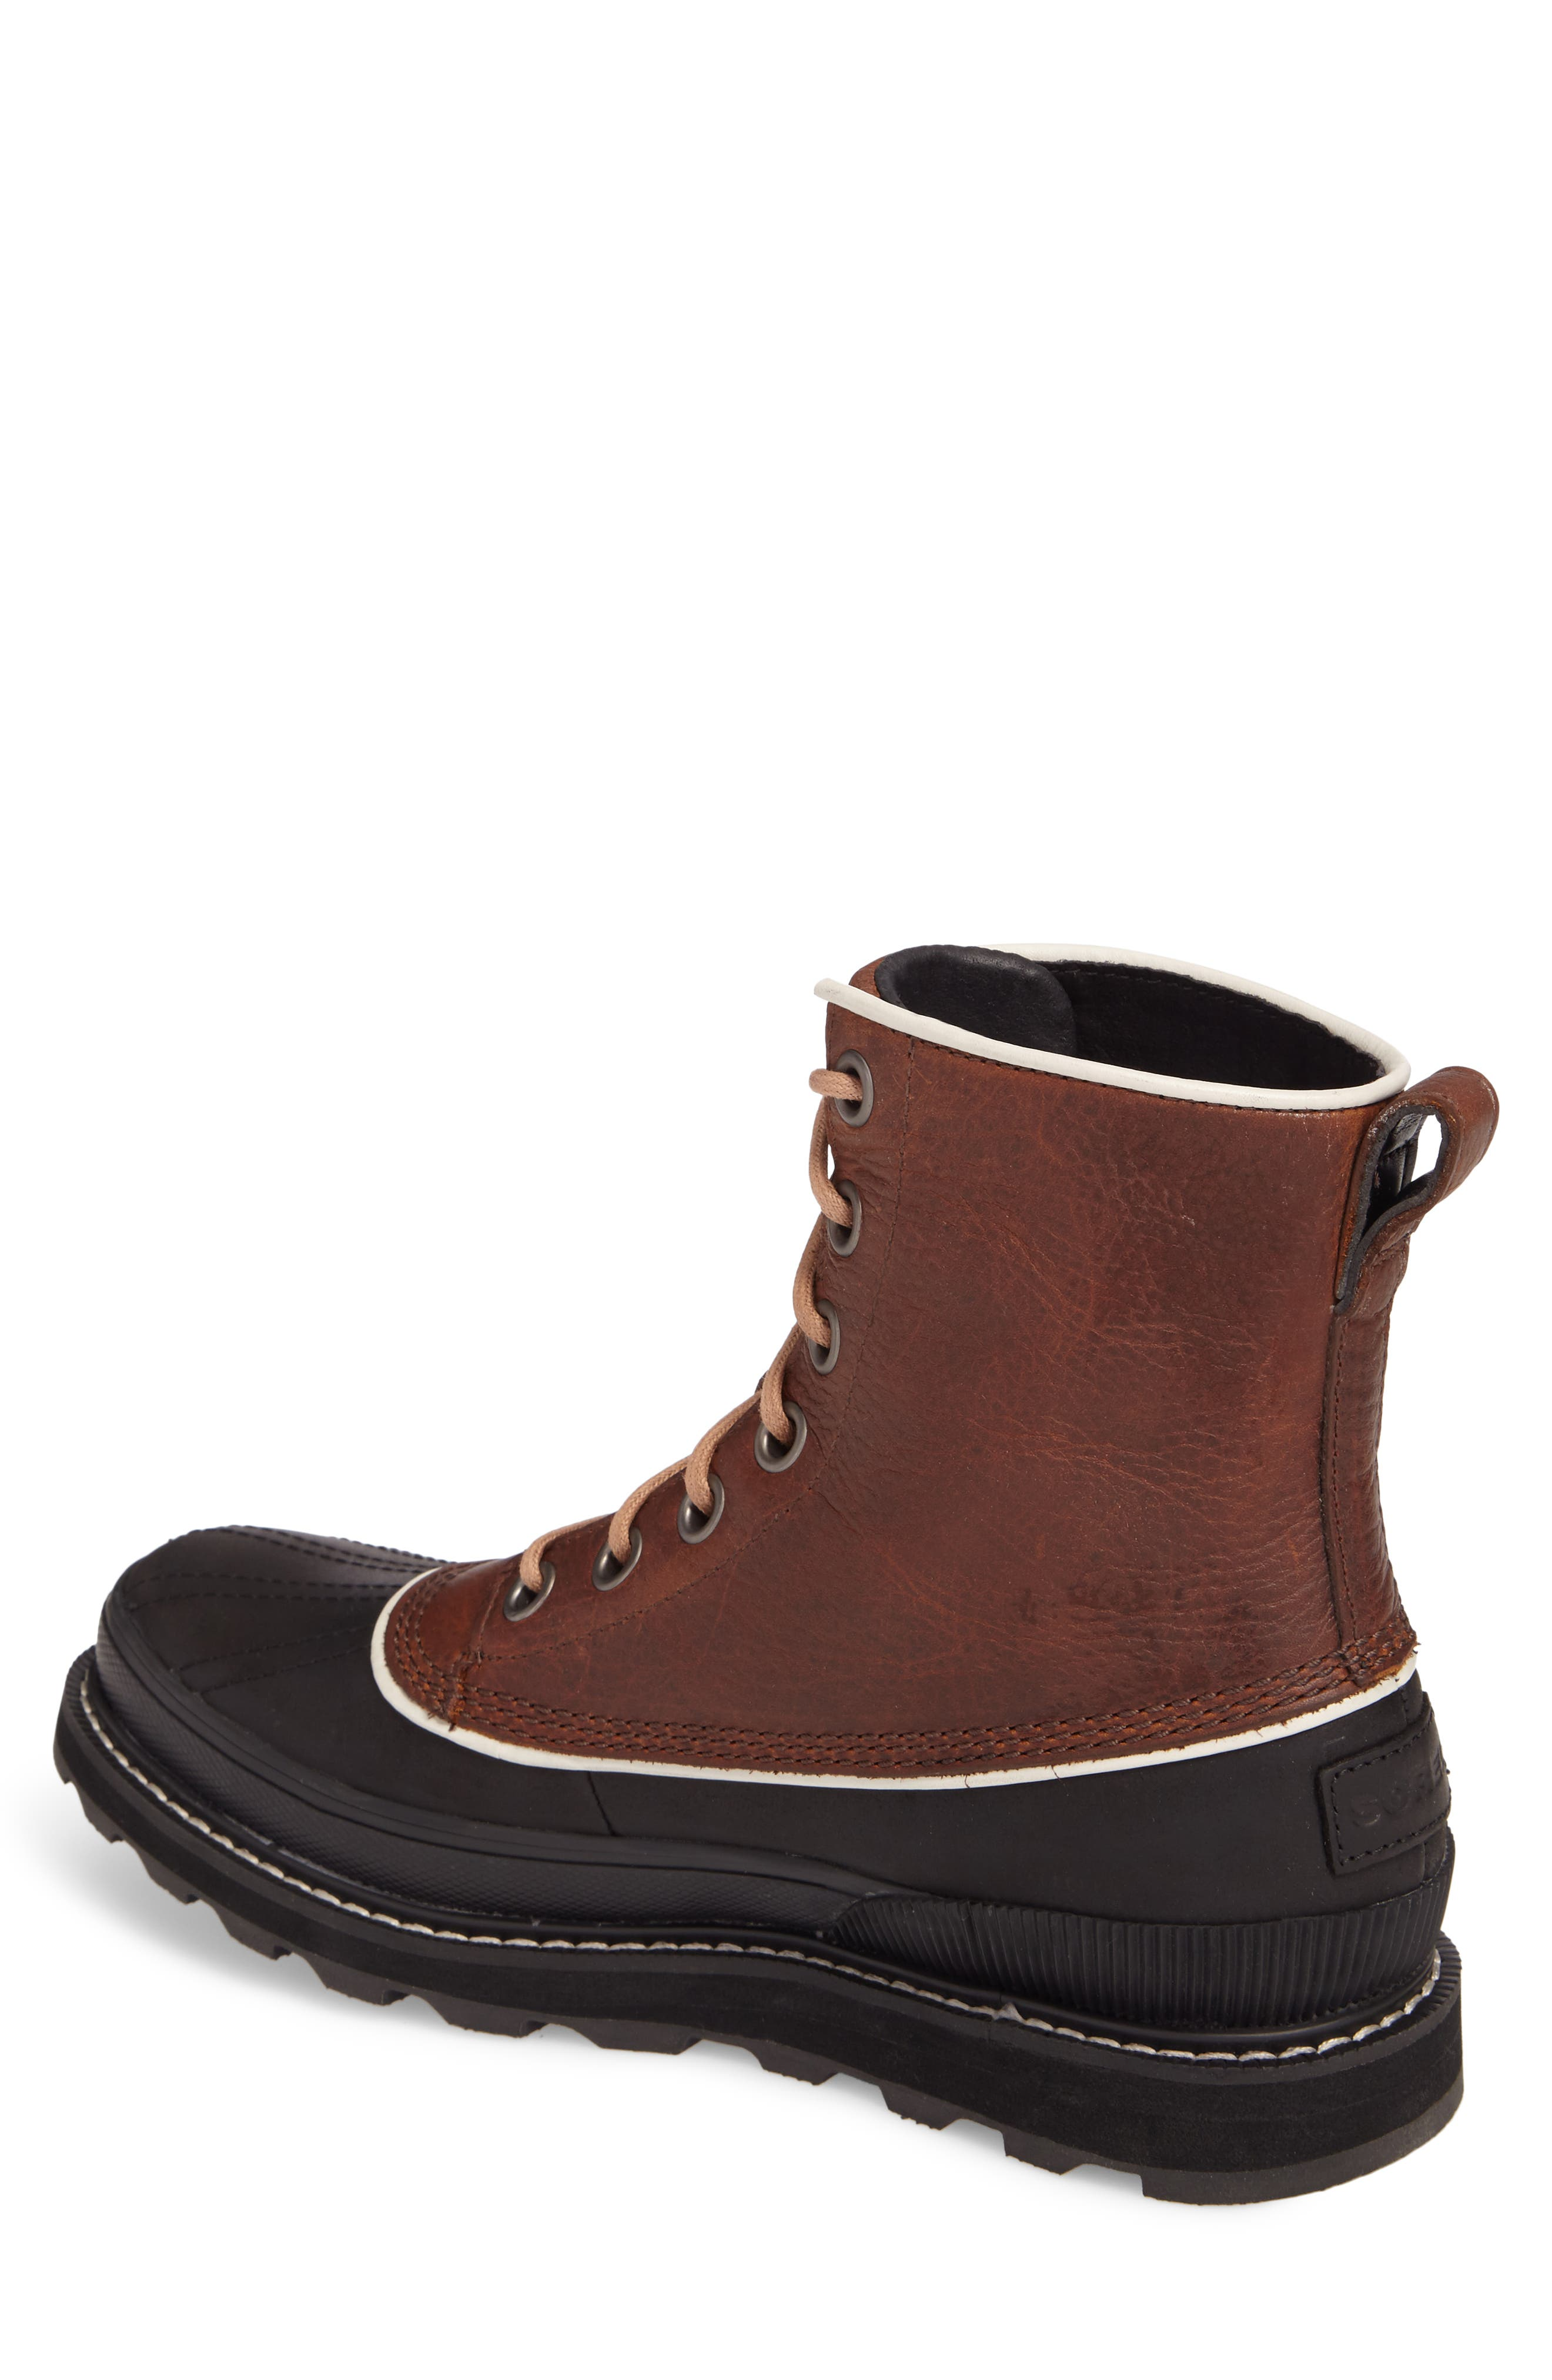 Madson 1964 Waterproof Boot,                             Alternate thumbnail 2, color,                             200